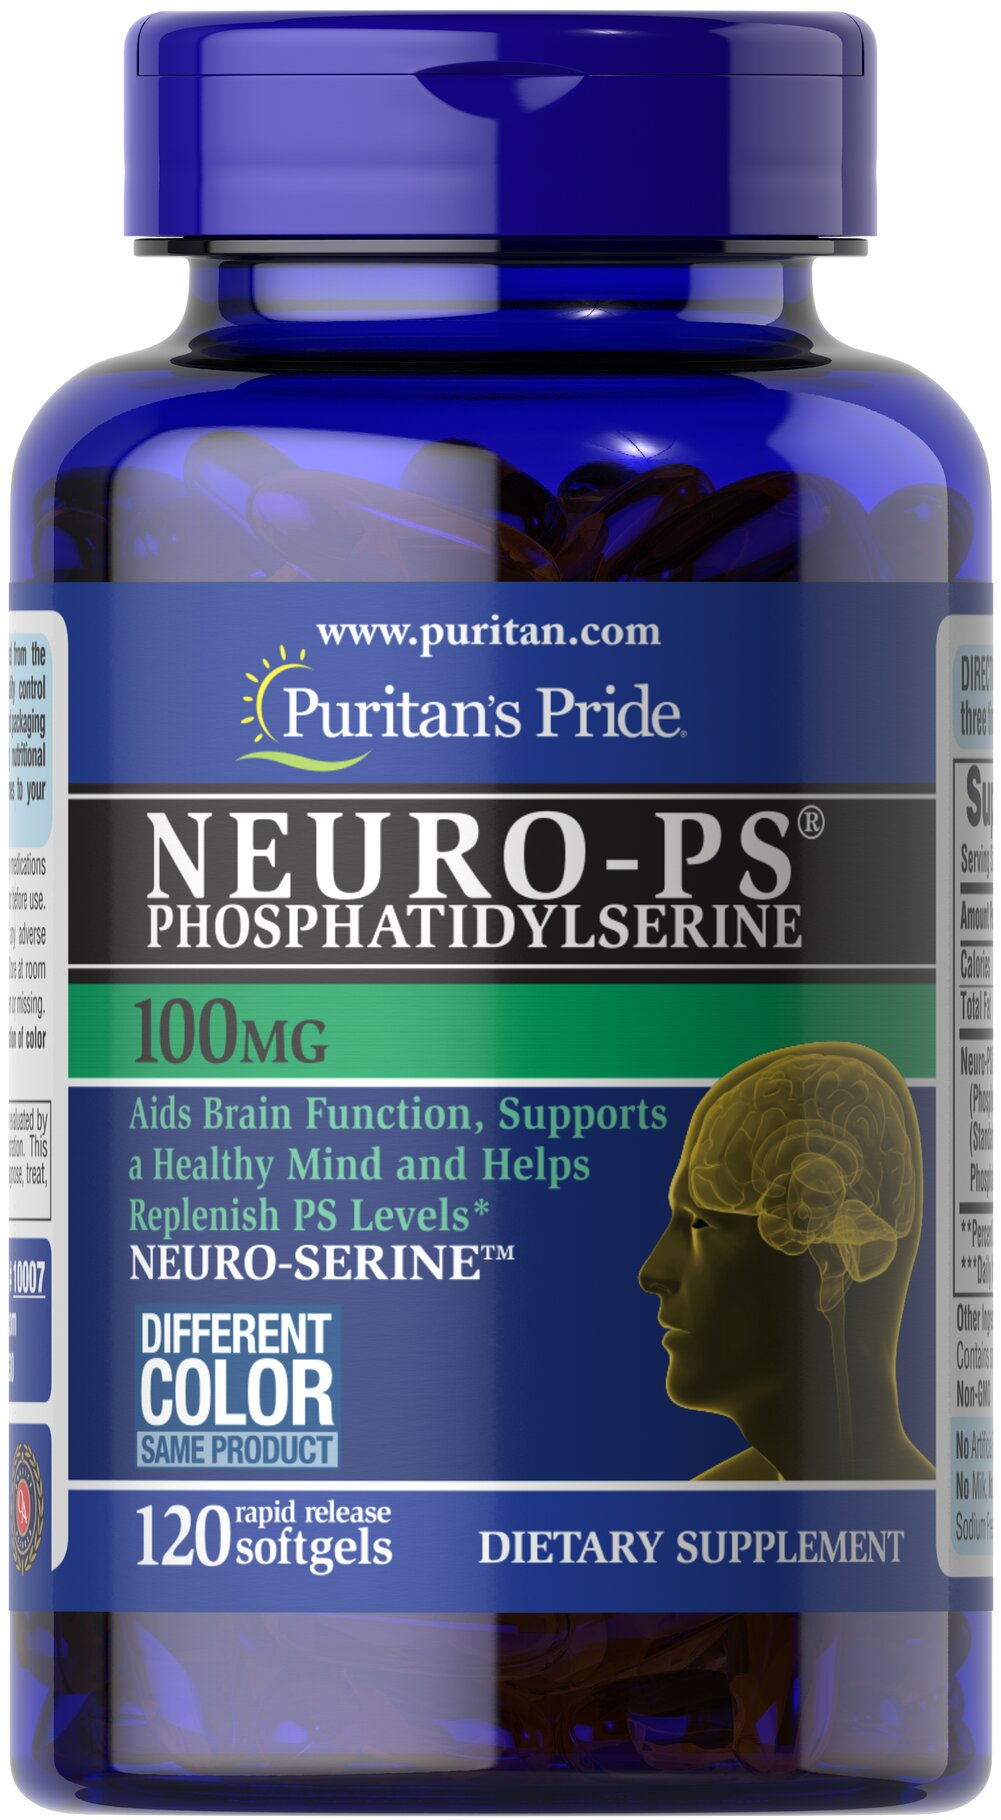 Neuro-Ps (Phosphatidylserine) 100 mg <p>Phosphatidylserine (PS):</p> <p>Aids Brain Function**</p><p>Supports a Healthy Mind**</p><p>Helps Replenish PS levels**</p>   <p>Very limited and preliminary scientific research suggests that PS may reduce the risk of cognitive dysfunction in the elderly. The FDA concludes that there is  little scientific evidence supporting this claim.</p><p>Available in 100, 200 and 300 milligram potencies